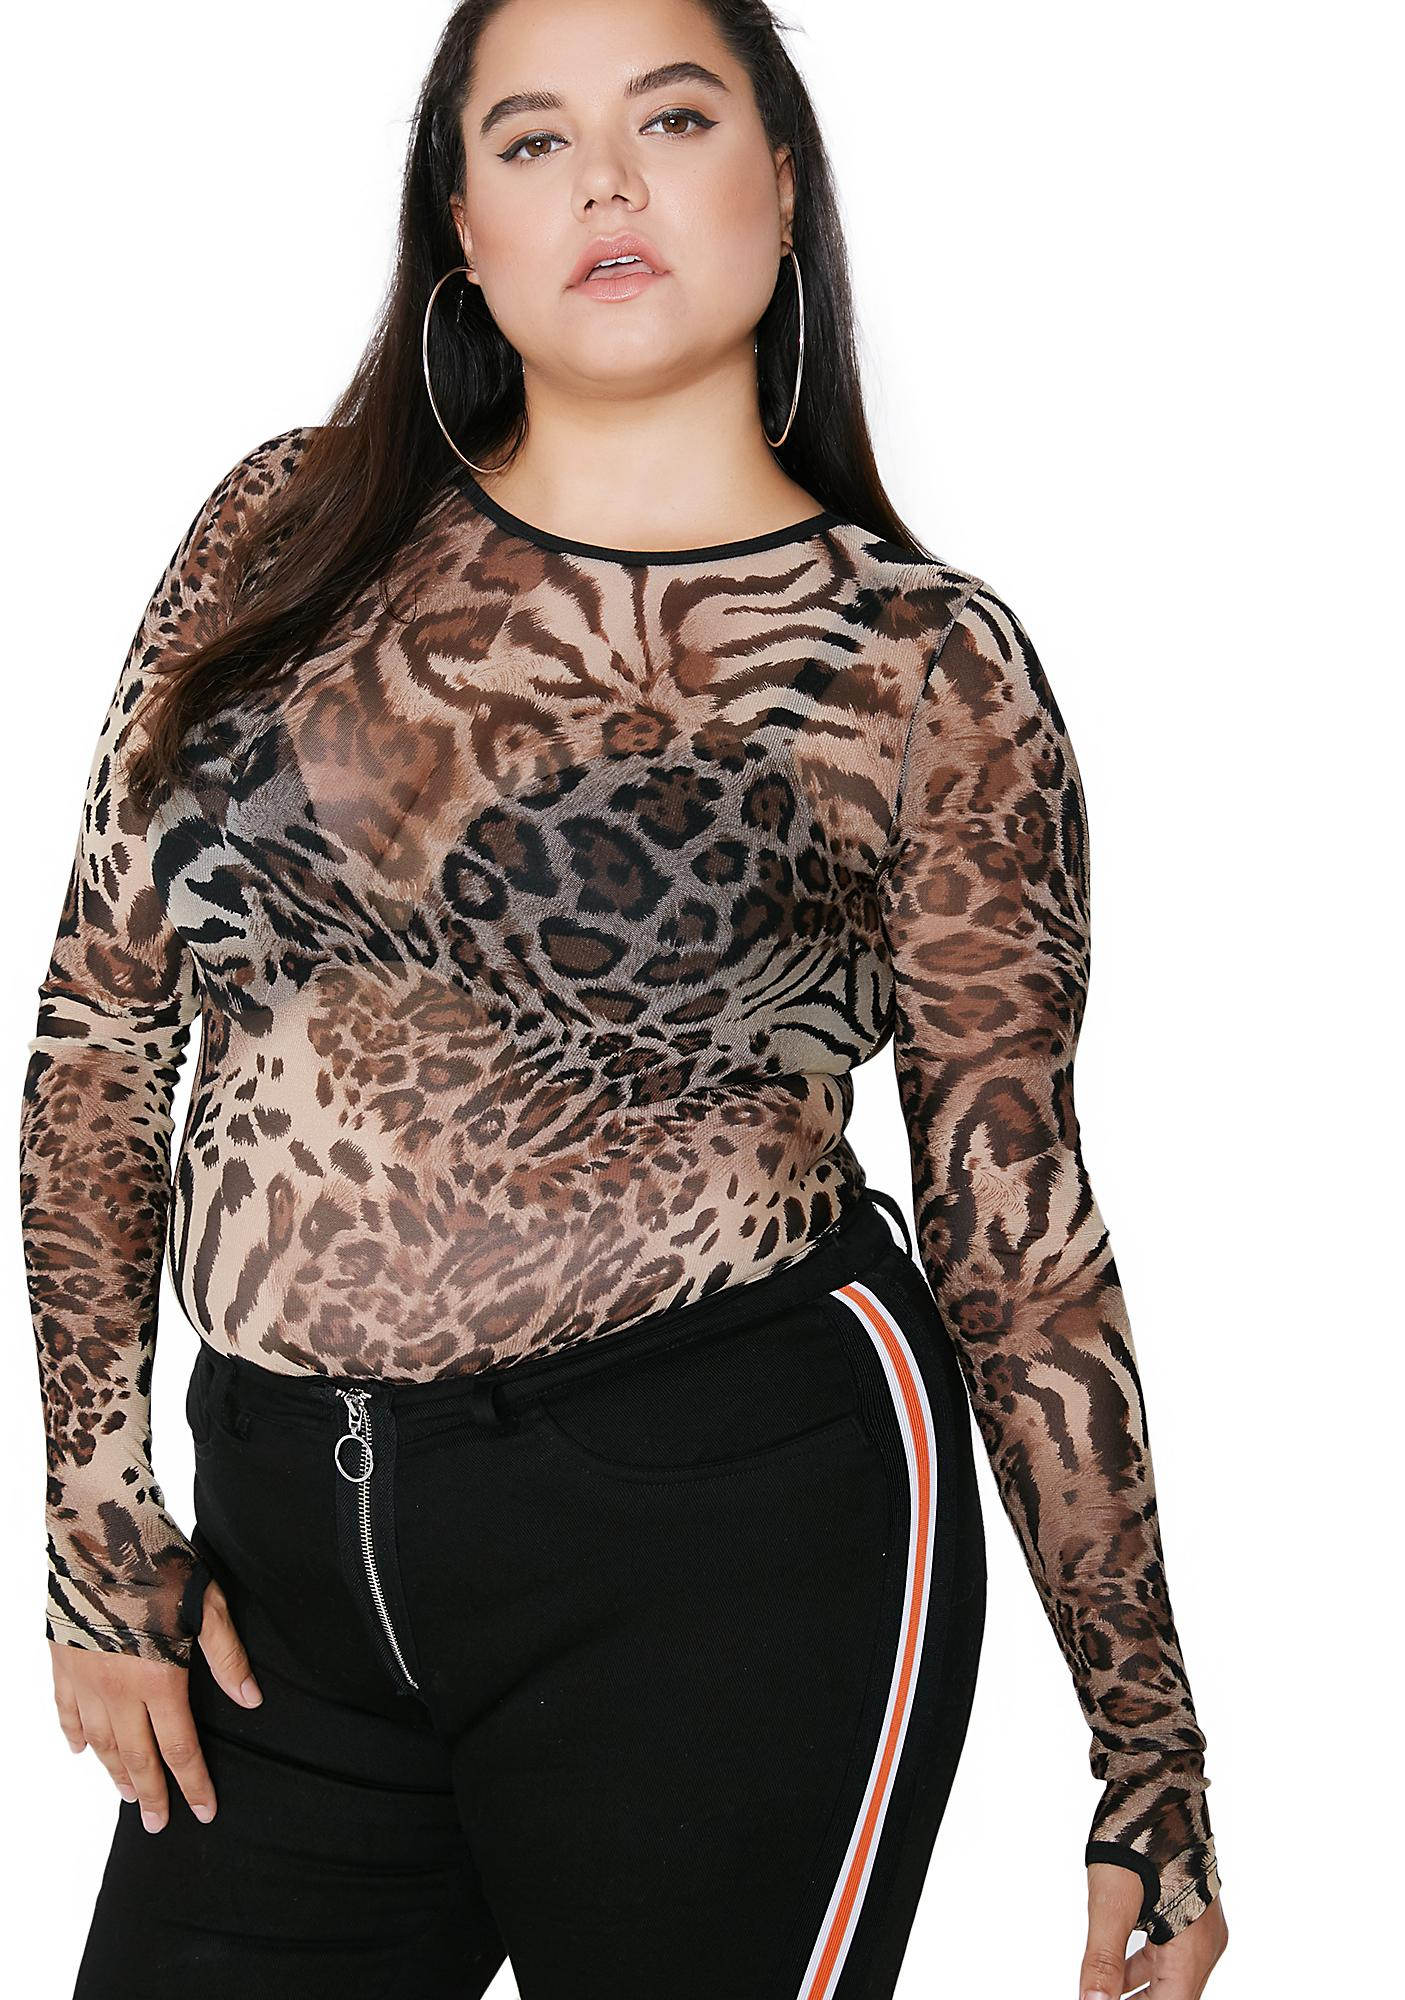 Poster Grl Cat Scratch Feva Mesh Top